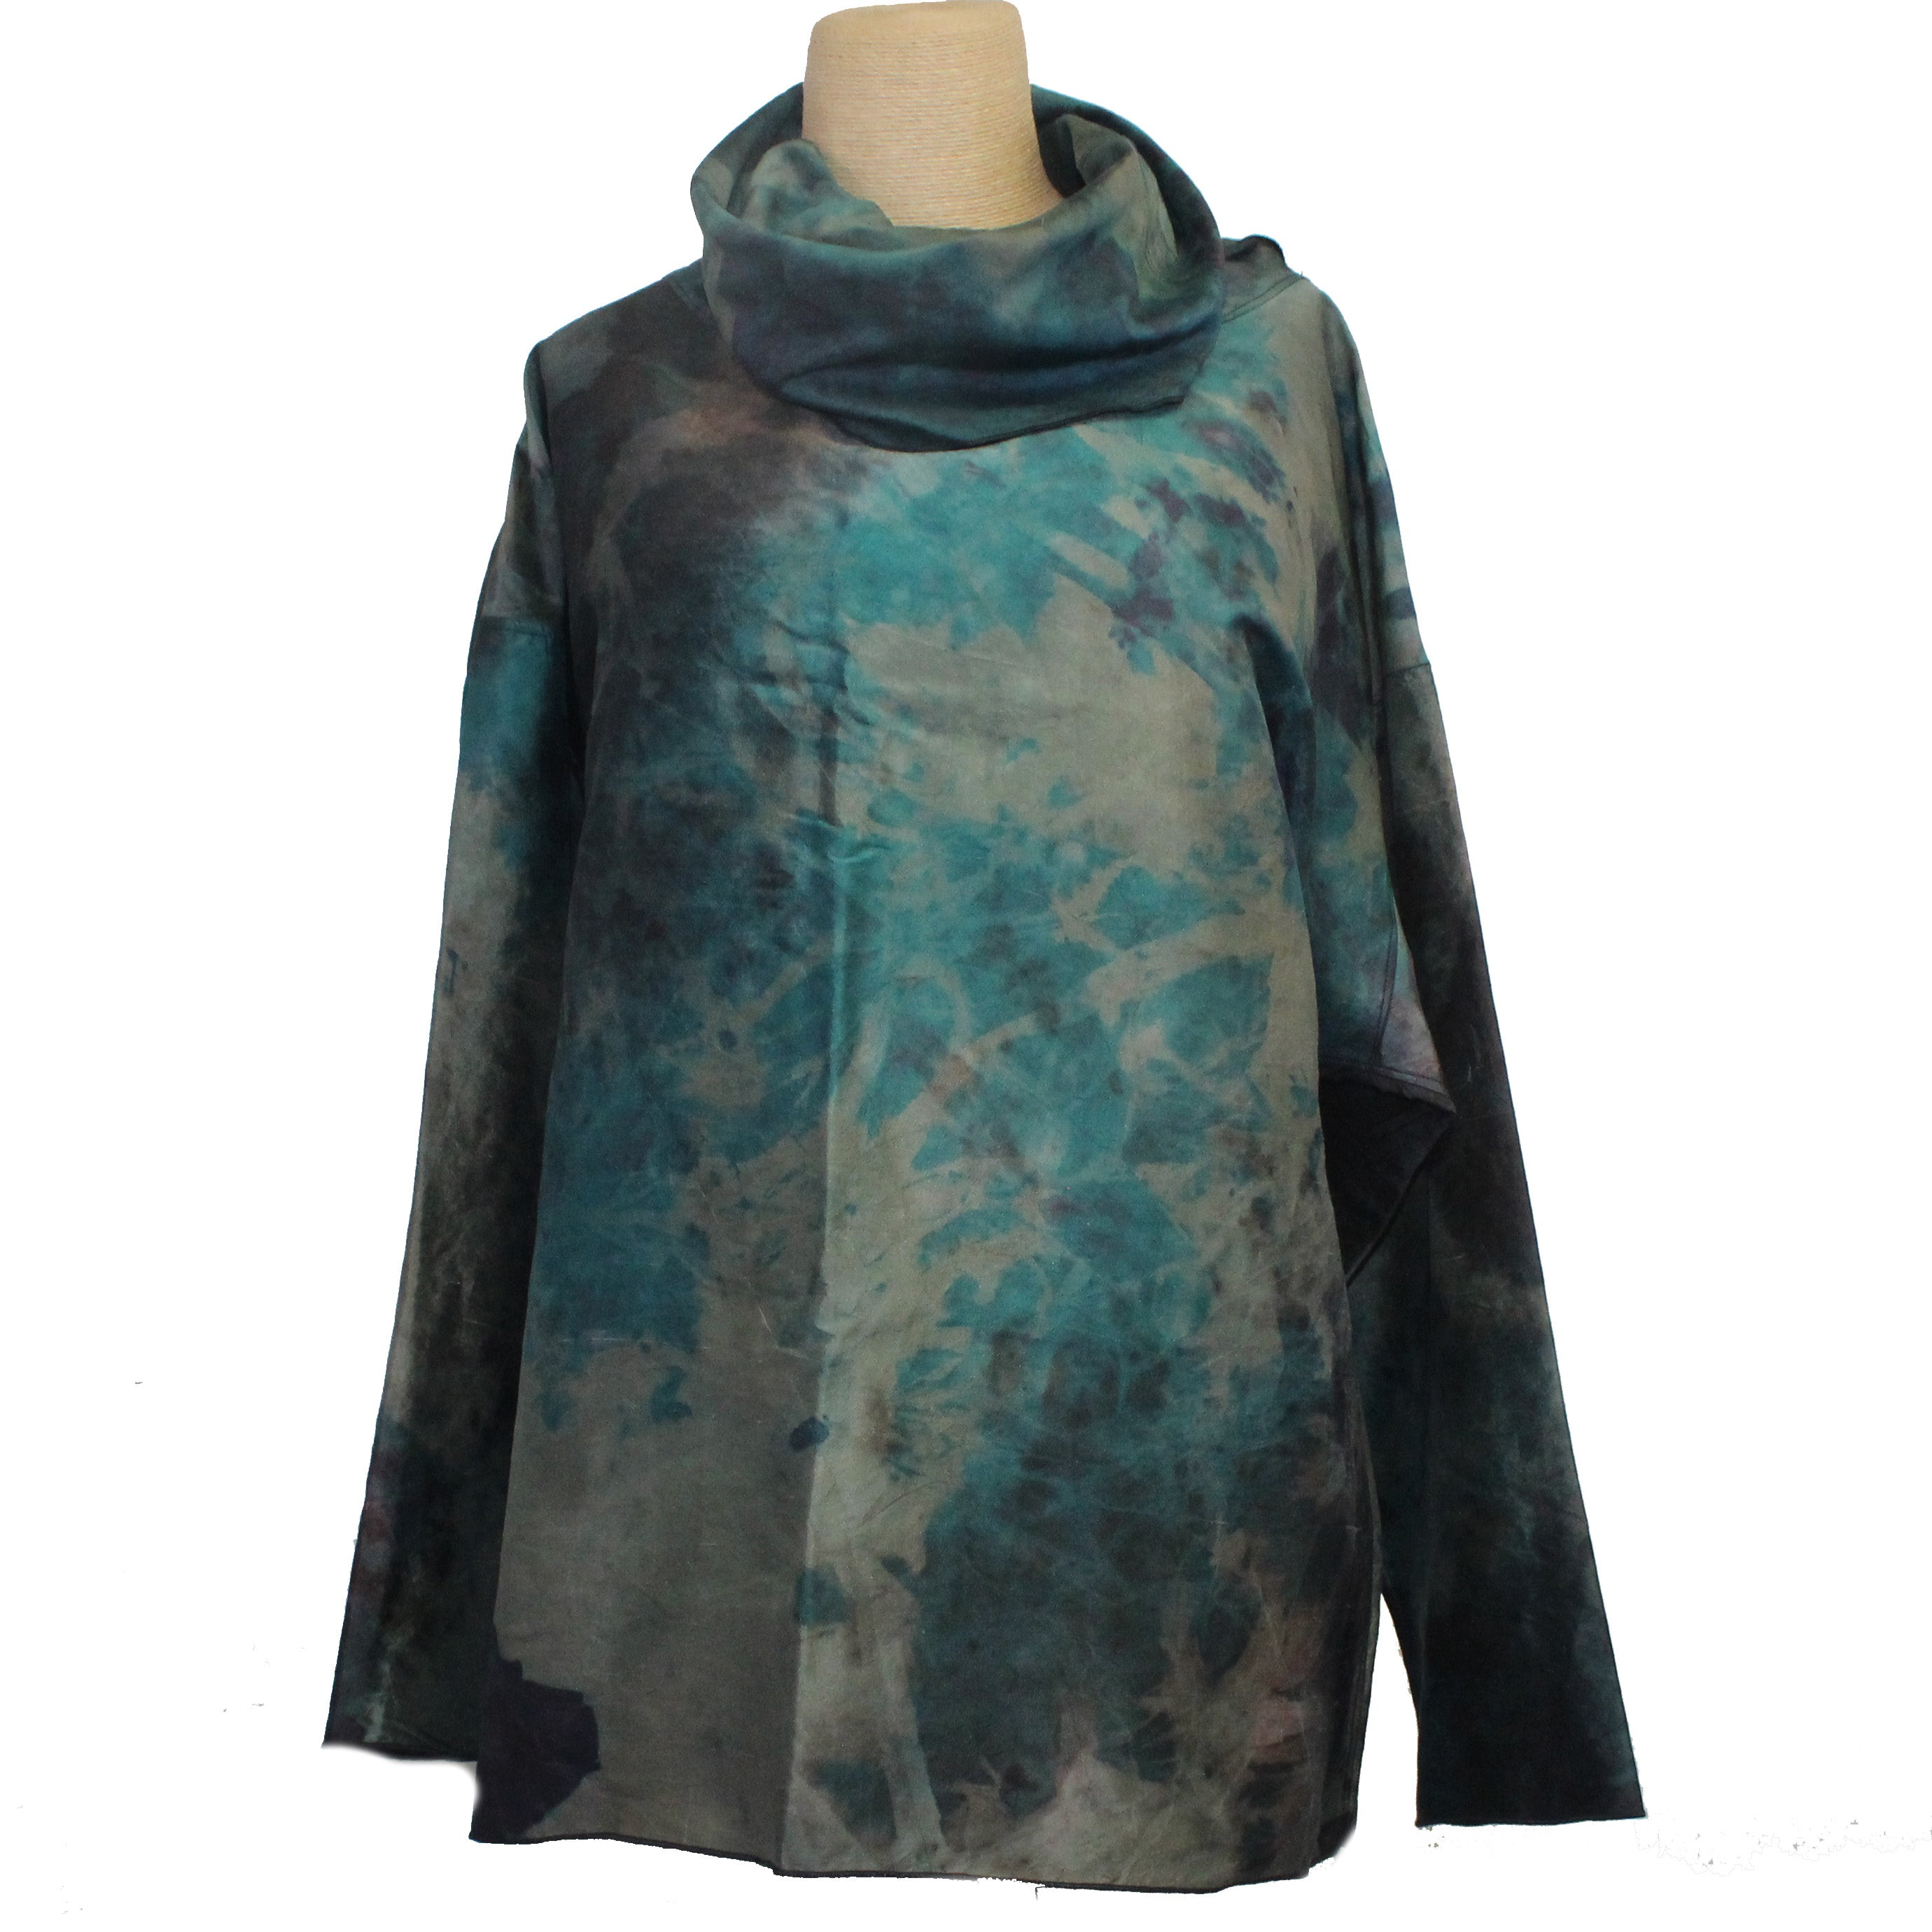 Darwall & Murphy Top, Funnel Neck, Teal/Celery, L/XL